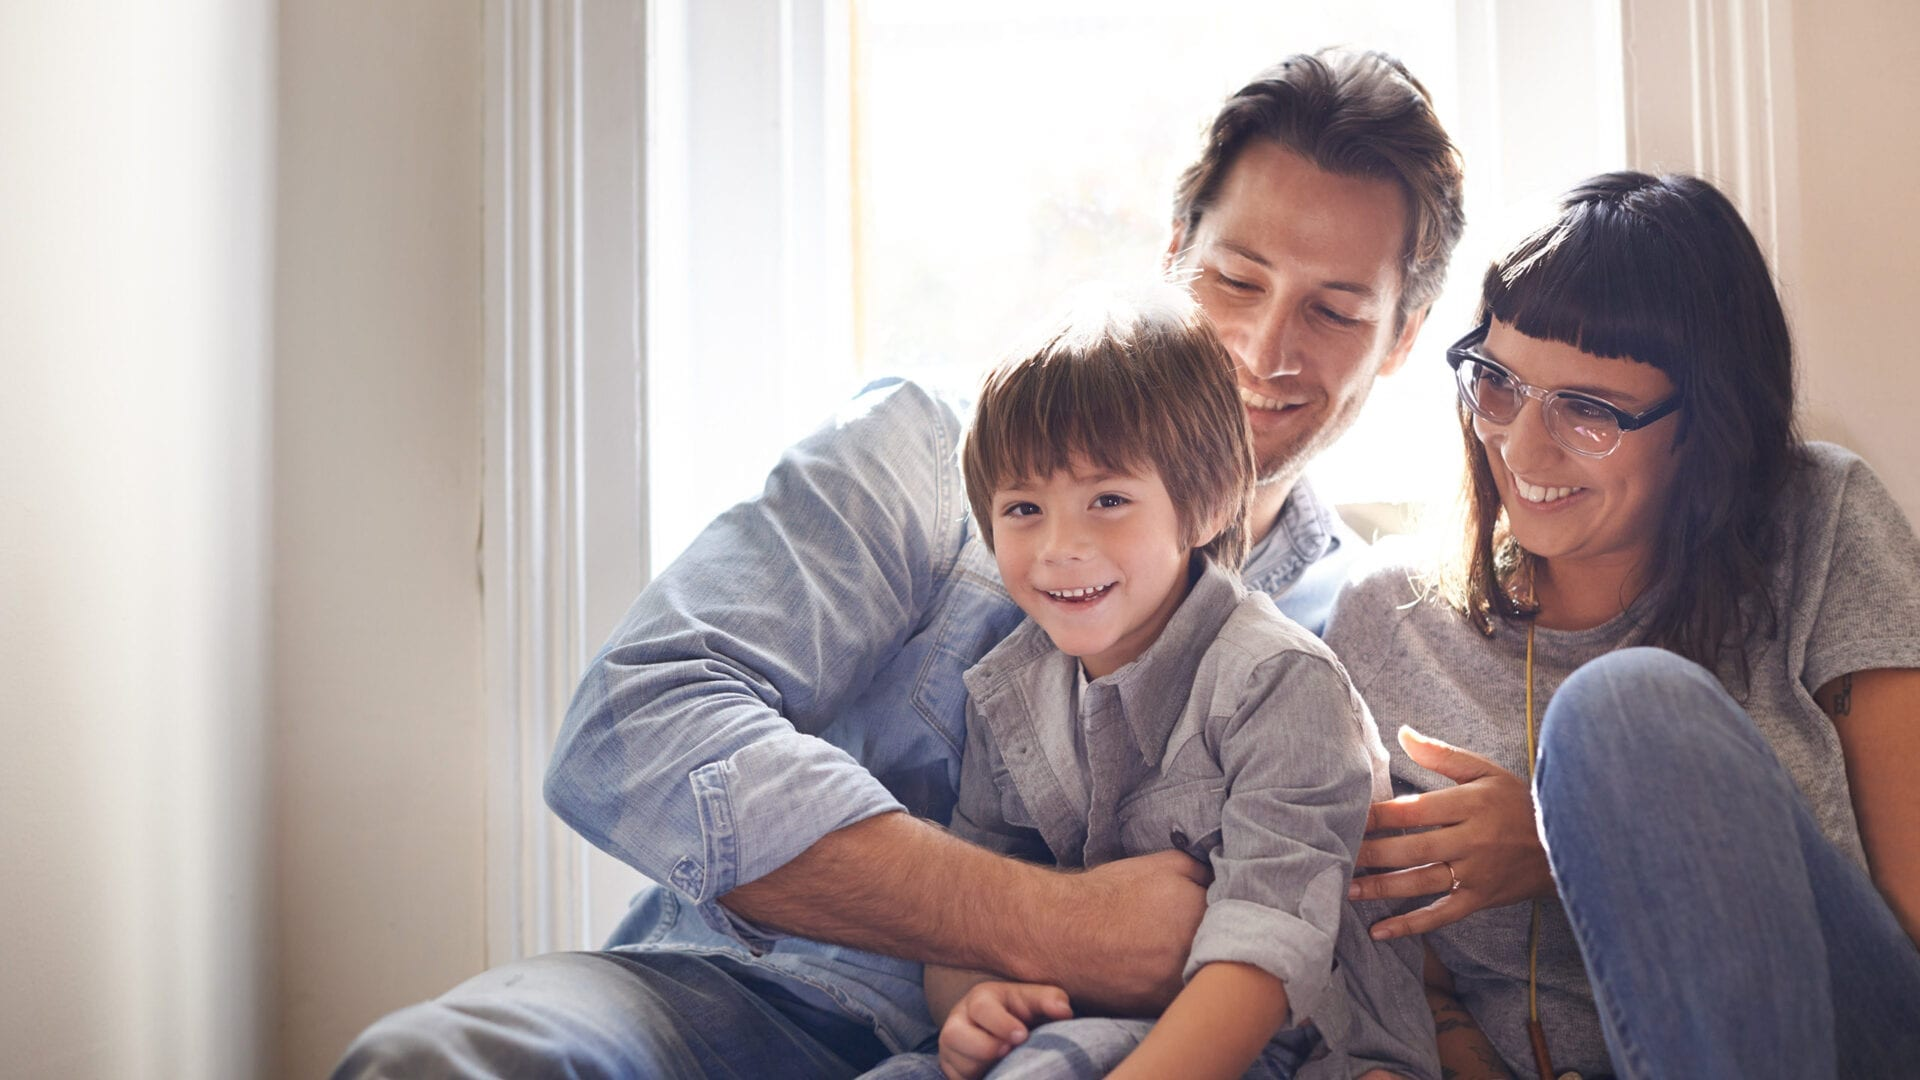 Couple and their son smiling and having fun